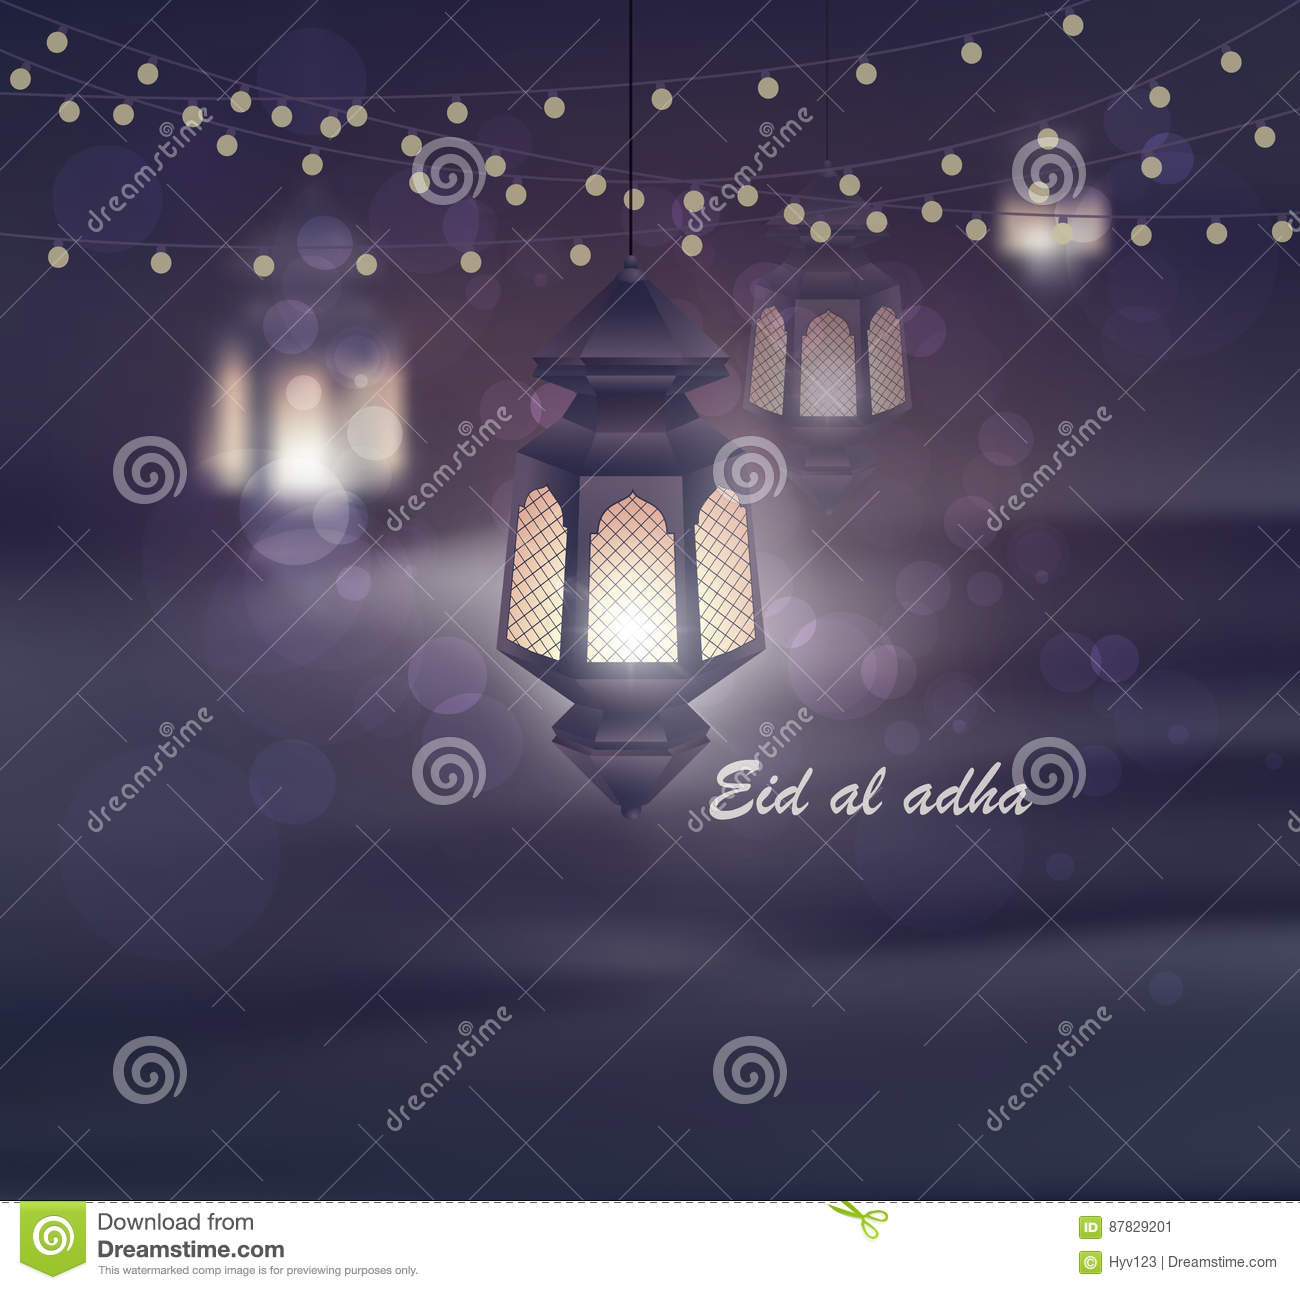 Must see Today Eid Al-Fitr Greeting - eid-al-adha-greeting-card-template-eid-al-fitr-muslim-religious-holiday-lanterns-blurred-lights-background-mosque-87829201  Pictures_648331 .jpg